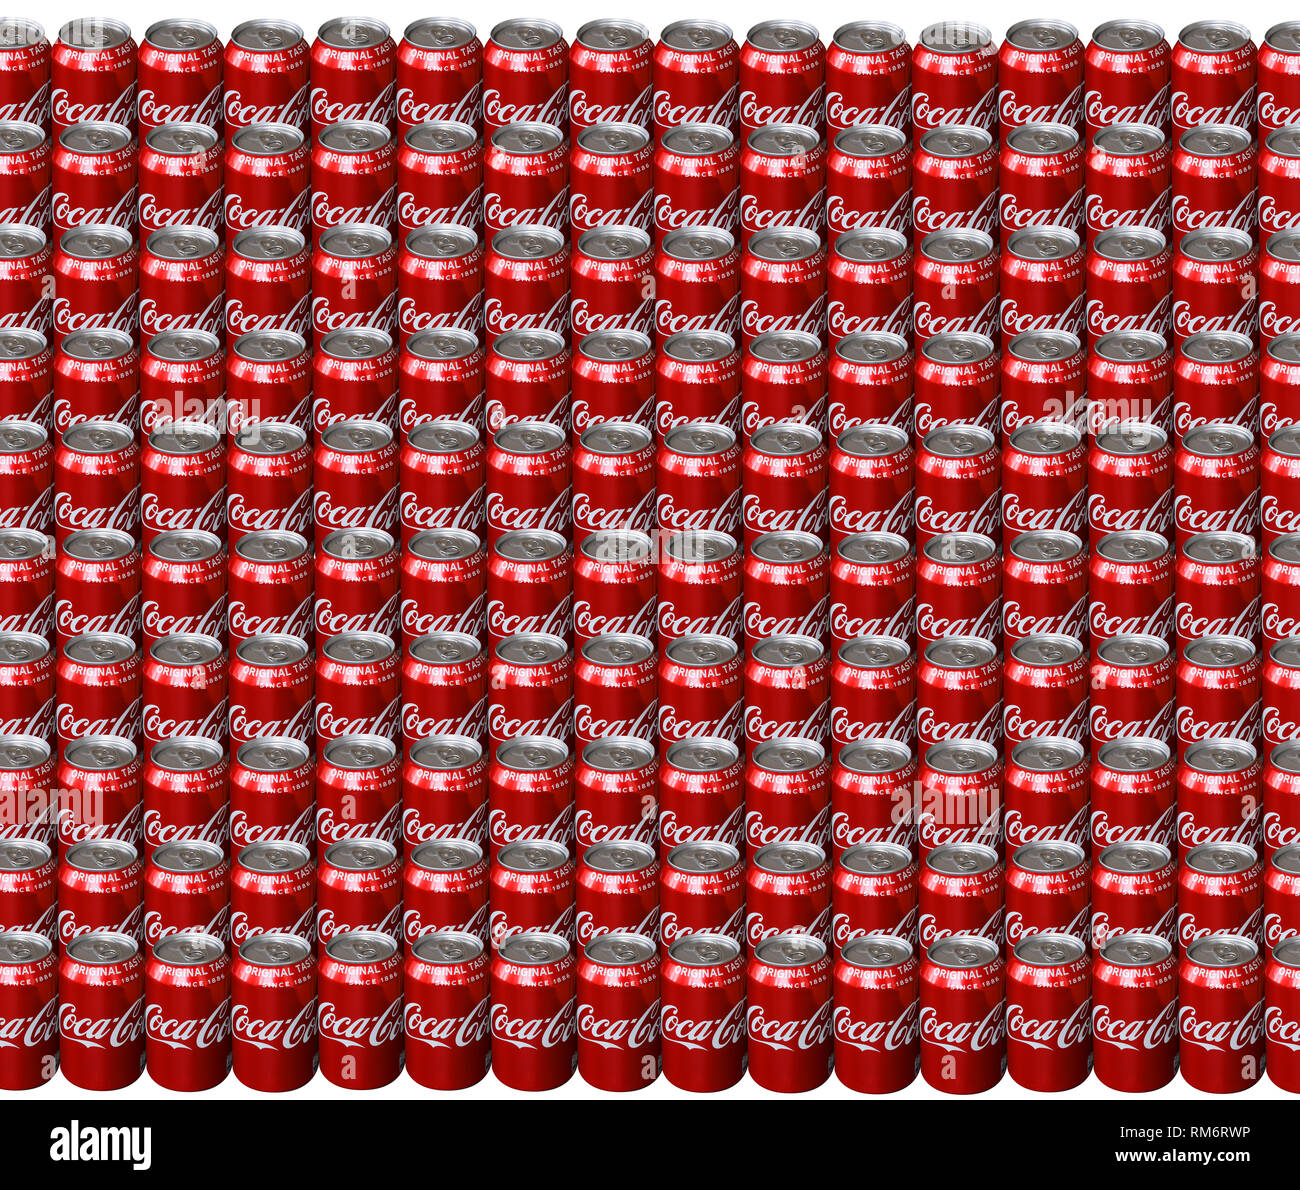 Lots of Coca Cola drink cans standing side by side in rows seen from above - The drink is produced and manufactured by The Coca-Cola Company - Image - - Stock Image